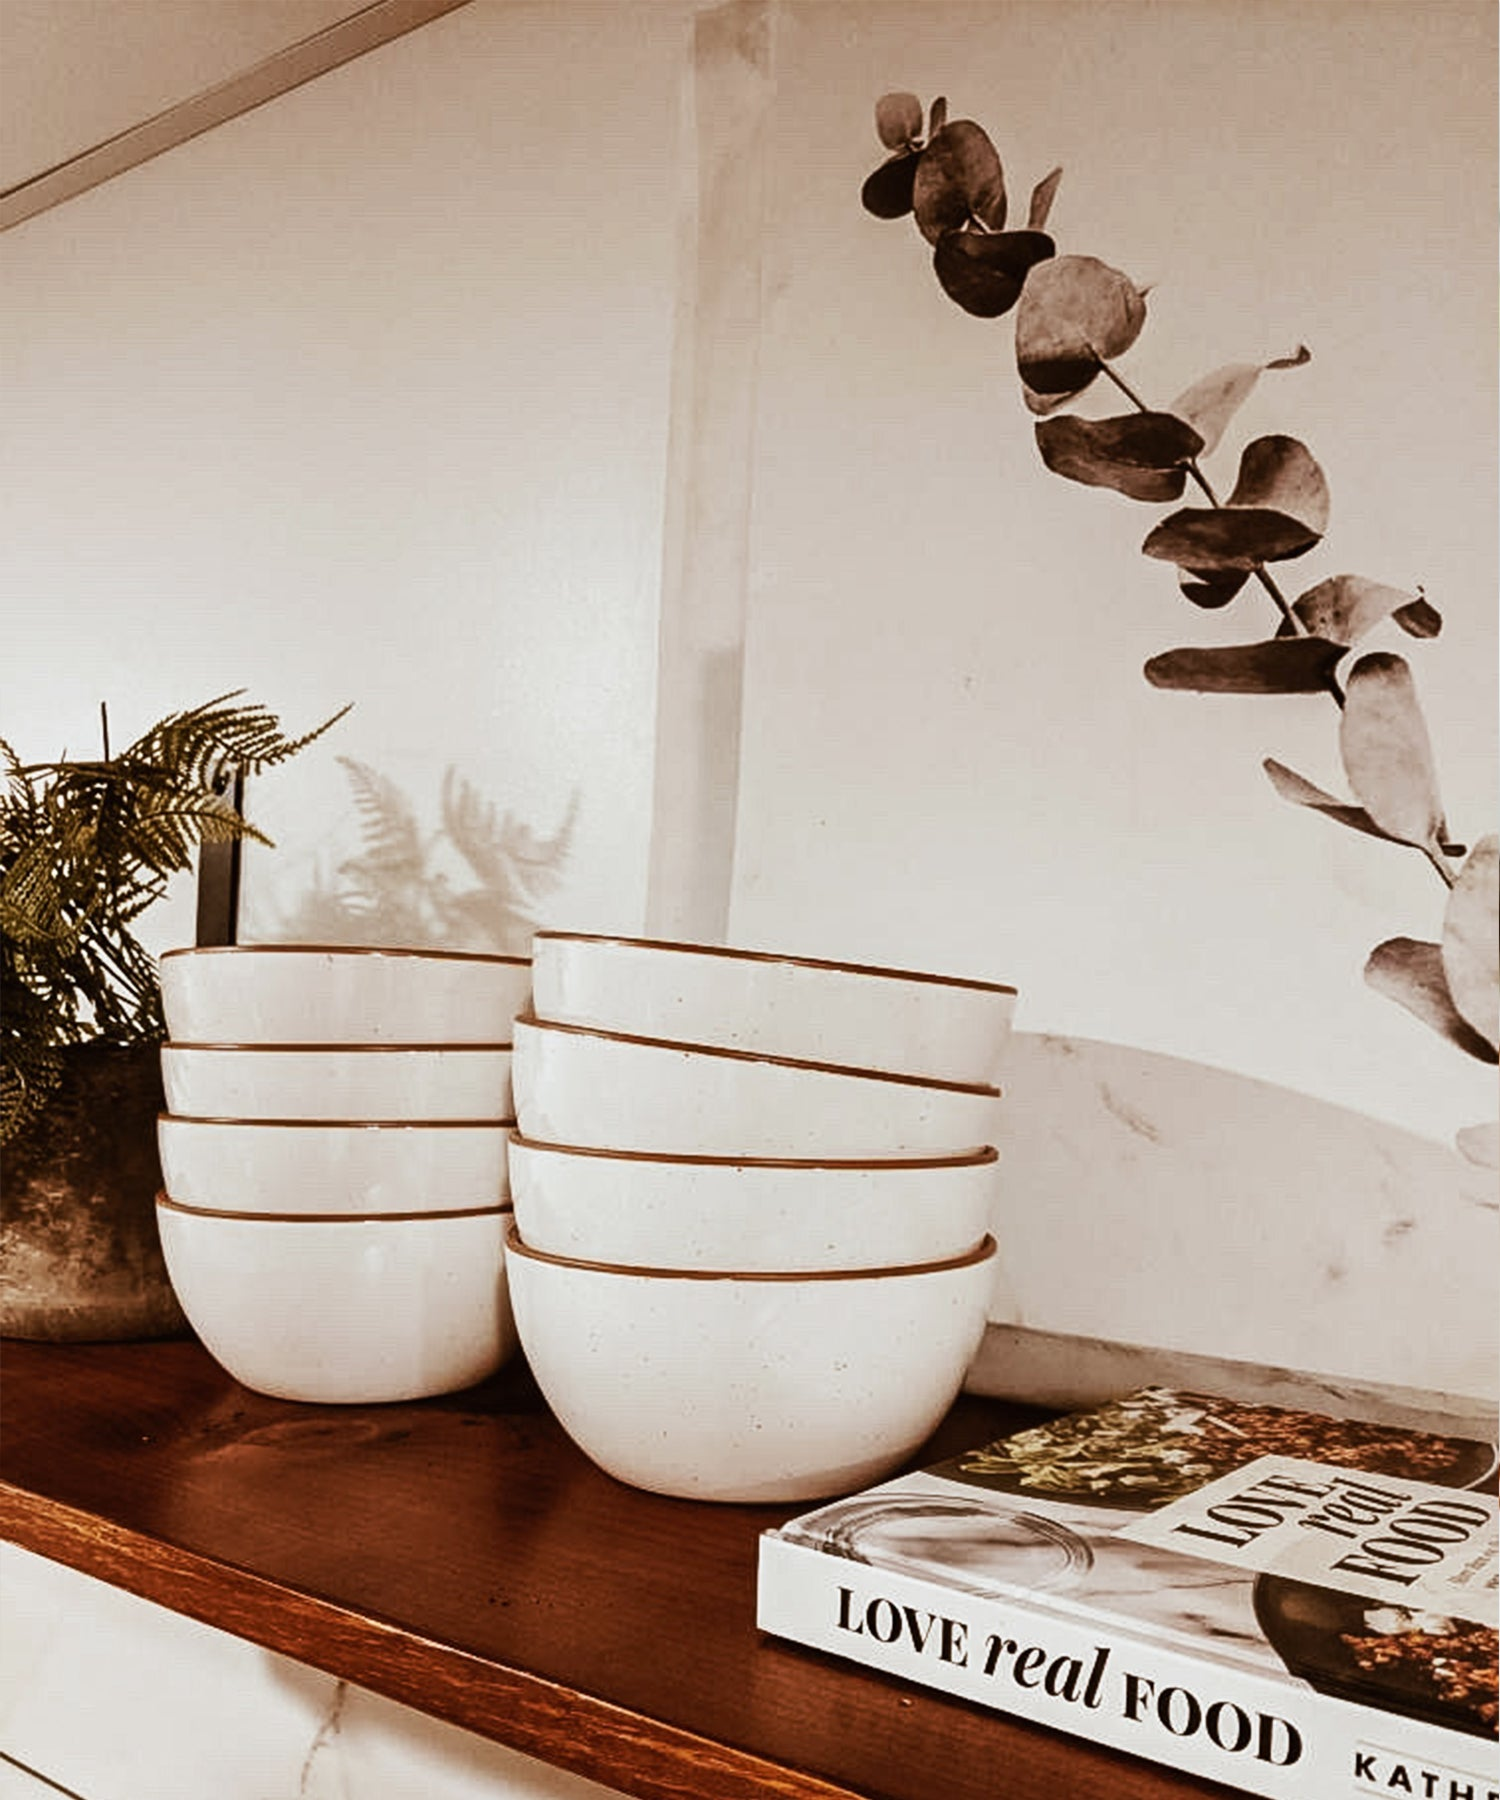 set of 8 stacked white speckled cereal bowls with brown rims on a wooden shelf with a eucalyptus plant